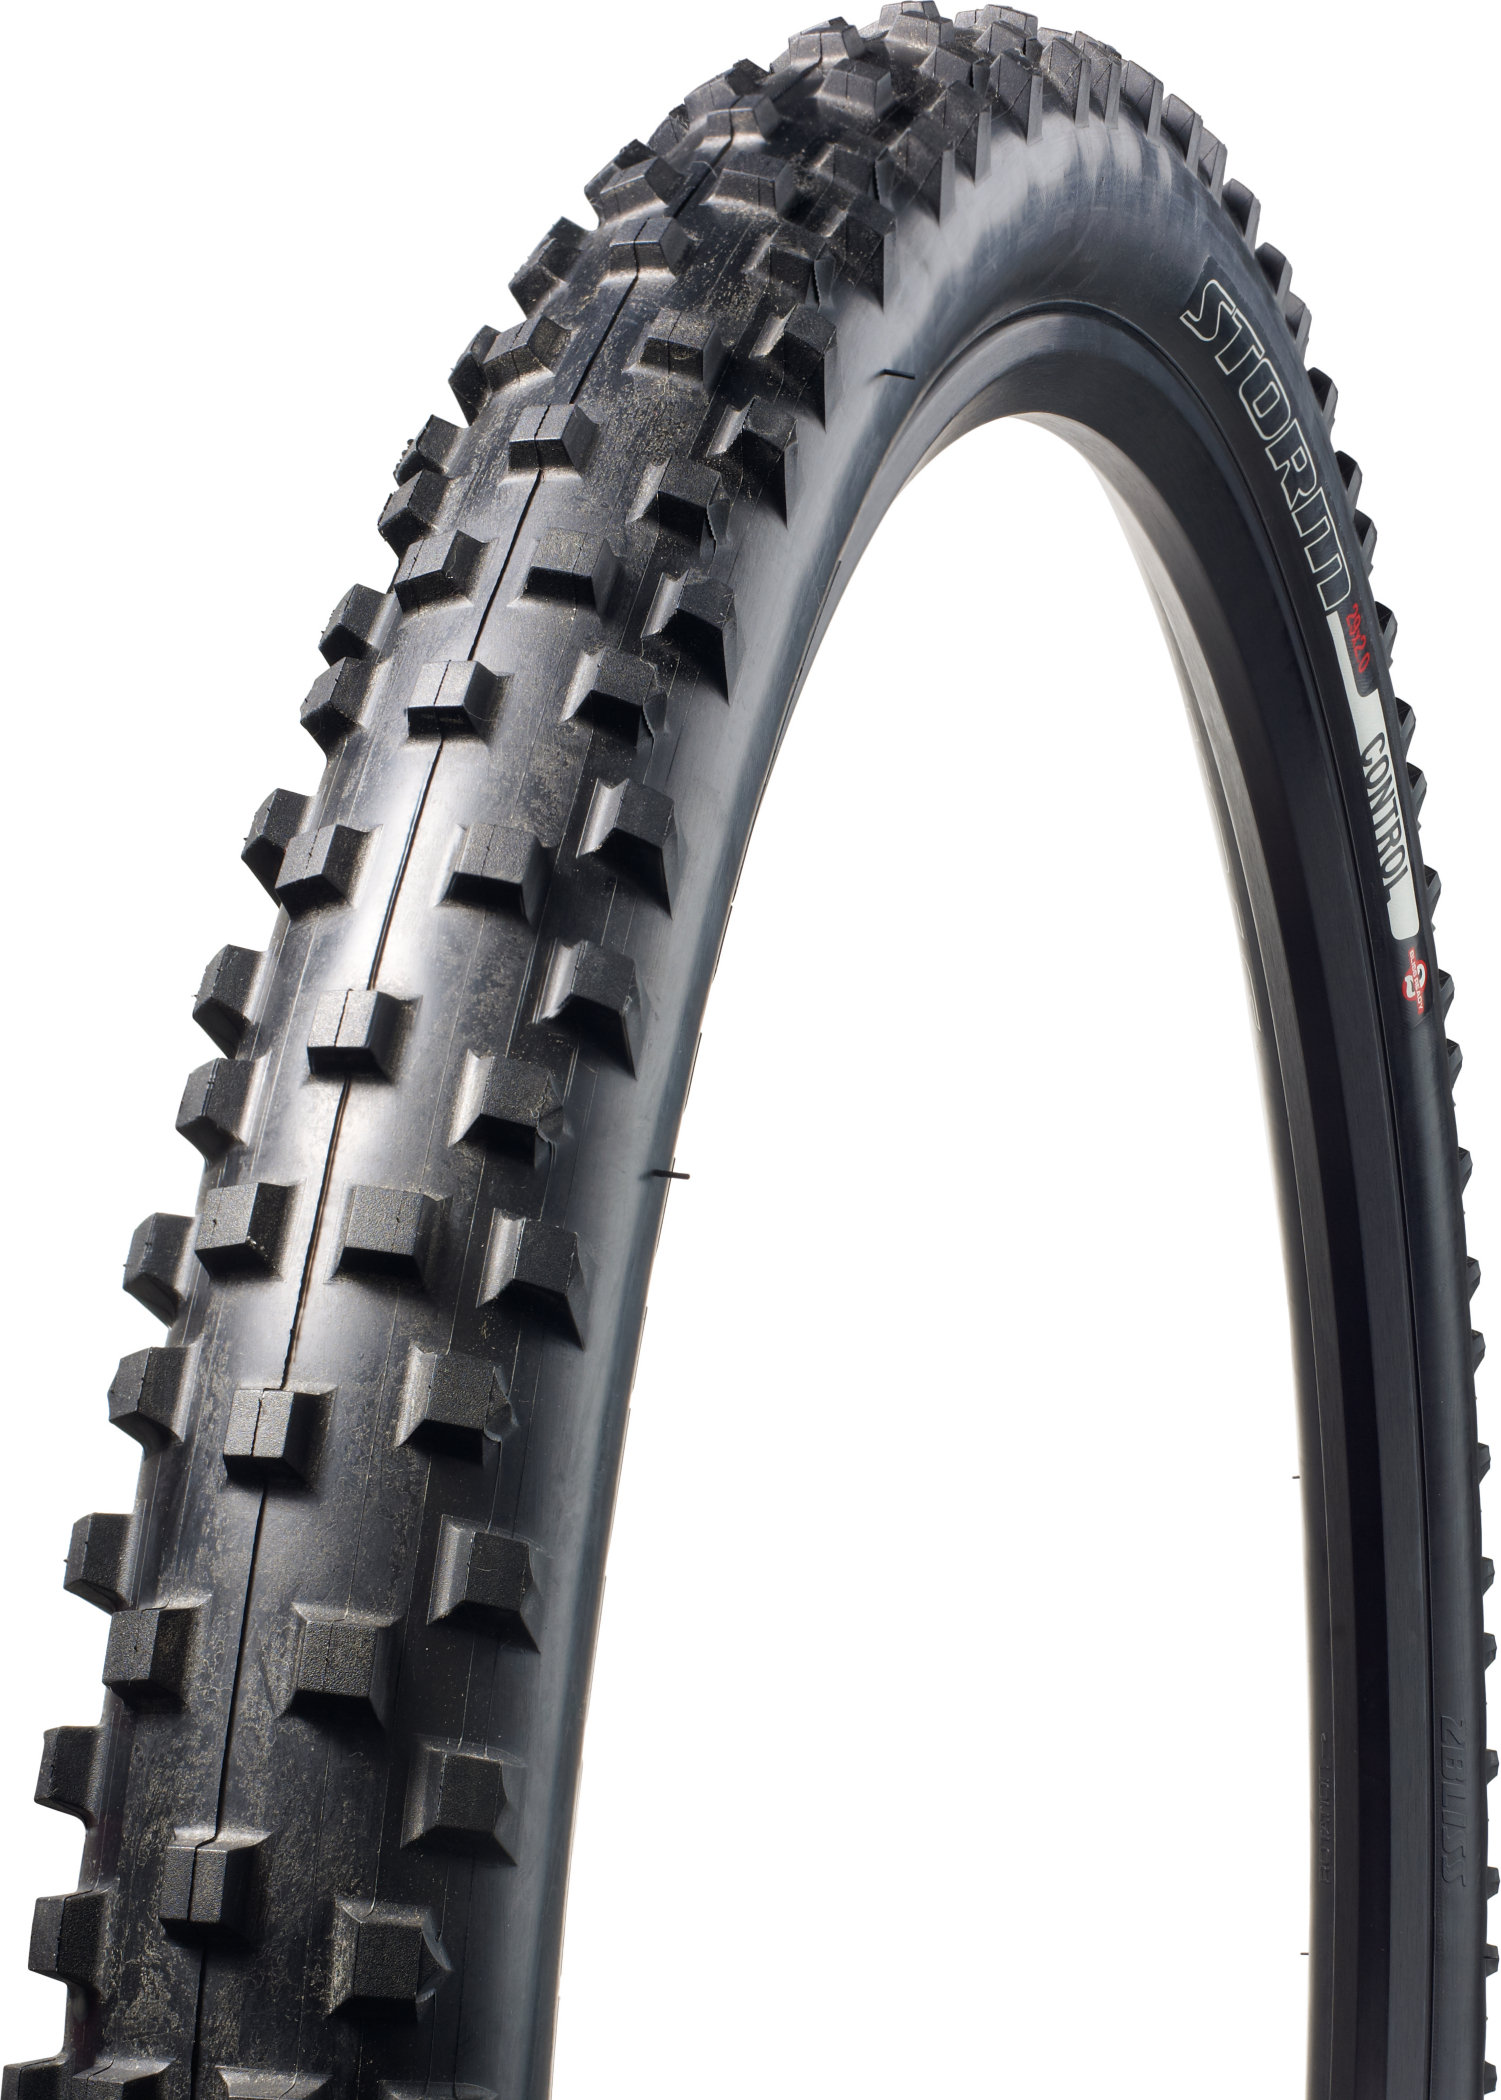 SPECIALIZED STORM CONTROL 2BR TIRE 650BX2.0 - SPECIALIZED STORM CONTROL 2BR TIRE 650BX2.0